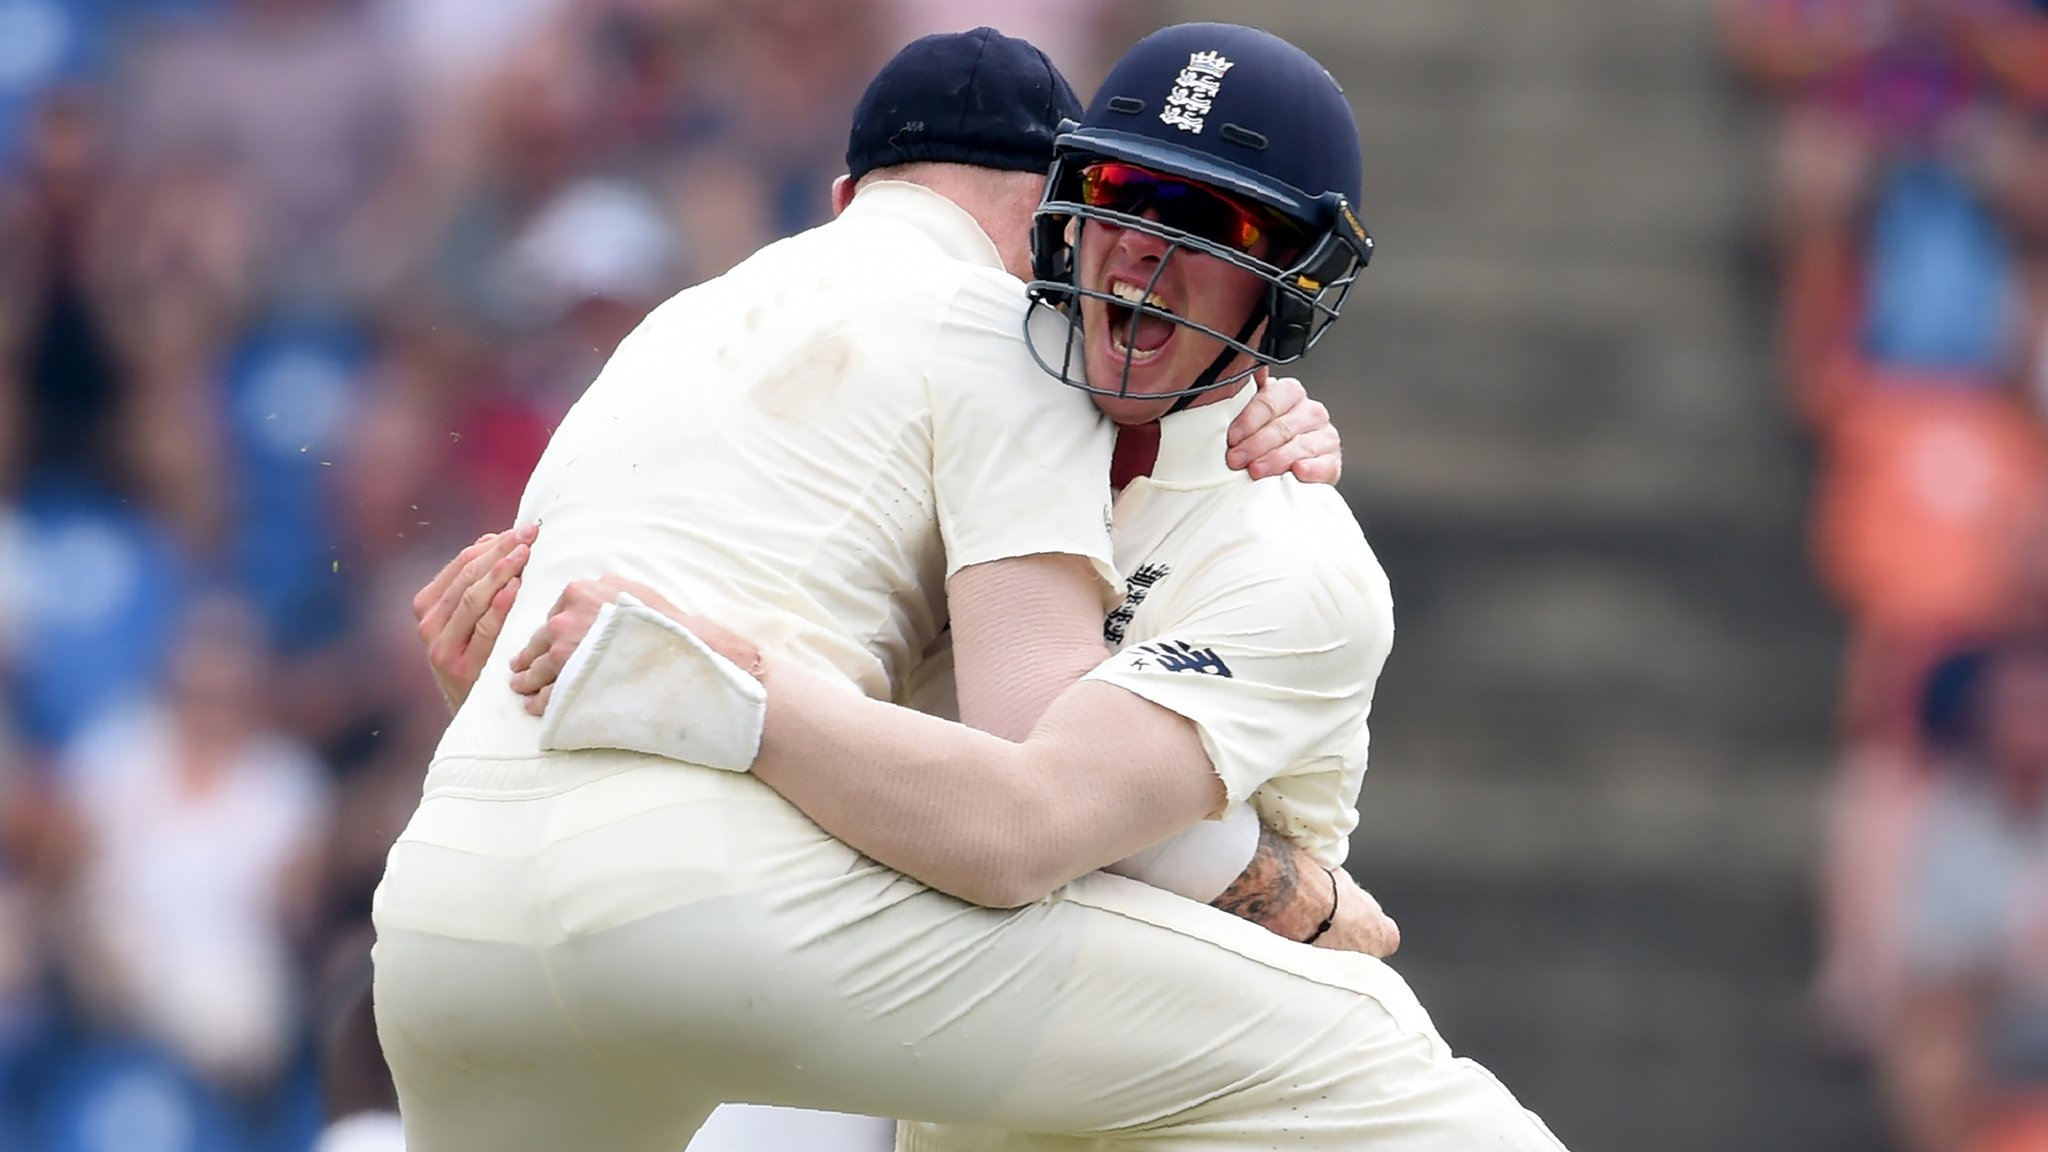 Sri Lanka v England: Keaton Jennings says stunning catches are 'no fluke'